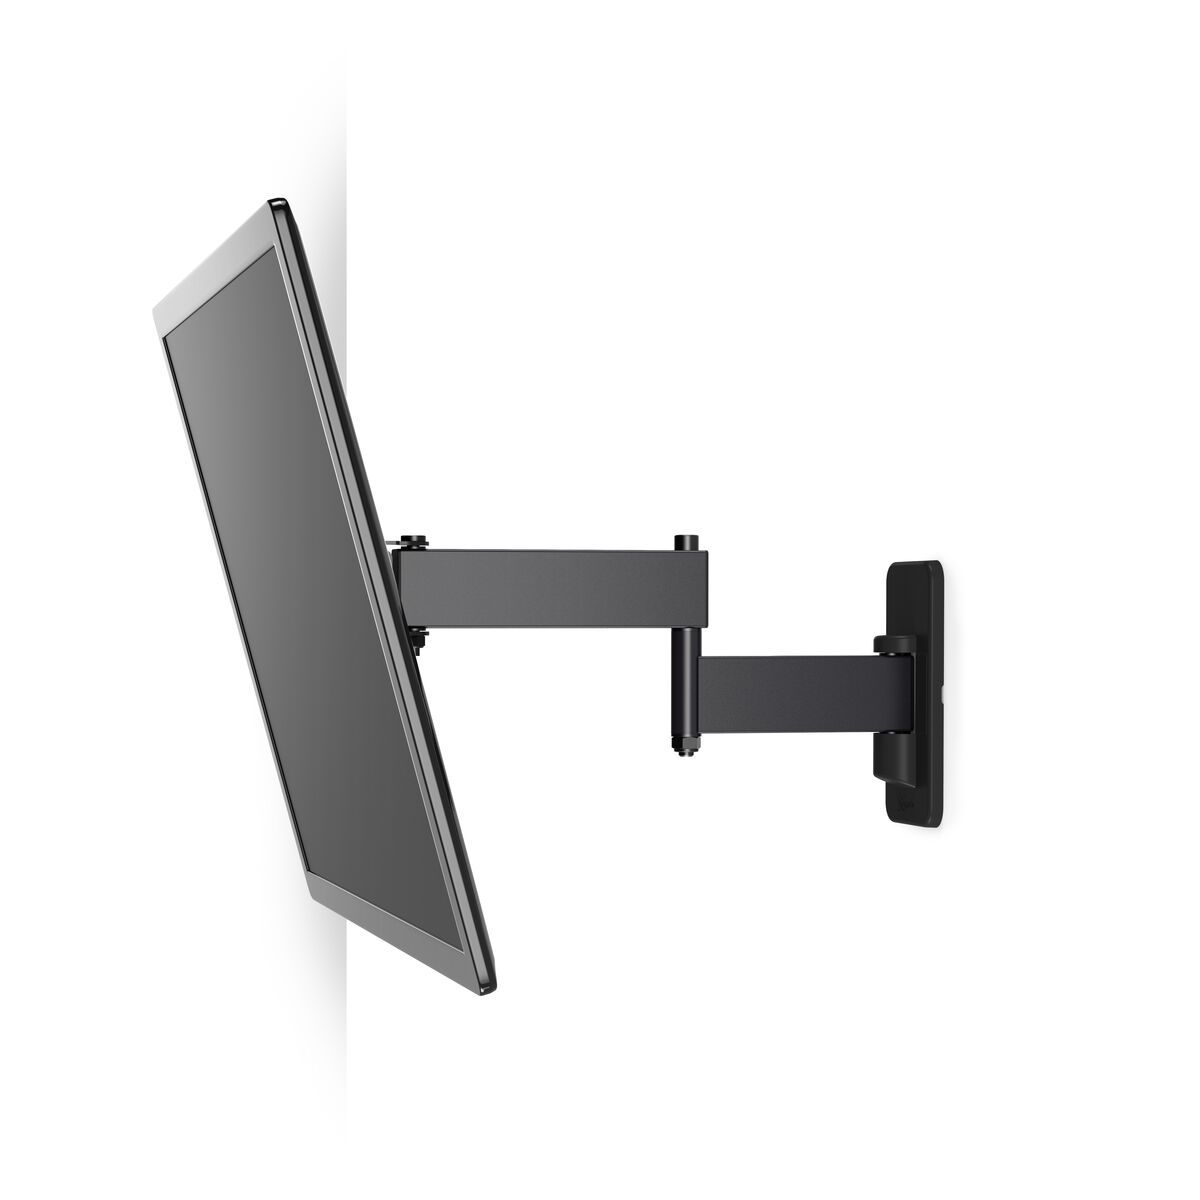 Vogel's MA 2040 (A1) Full-Motion TV Wall Mount - Suitable for 19 up to 40 inch TVs - Full motion (up to 180°) - Tilt up to 10° - White wall